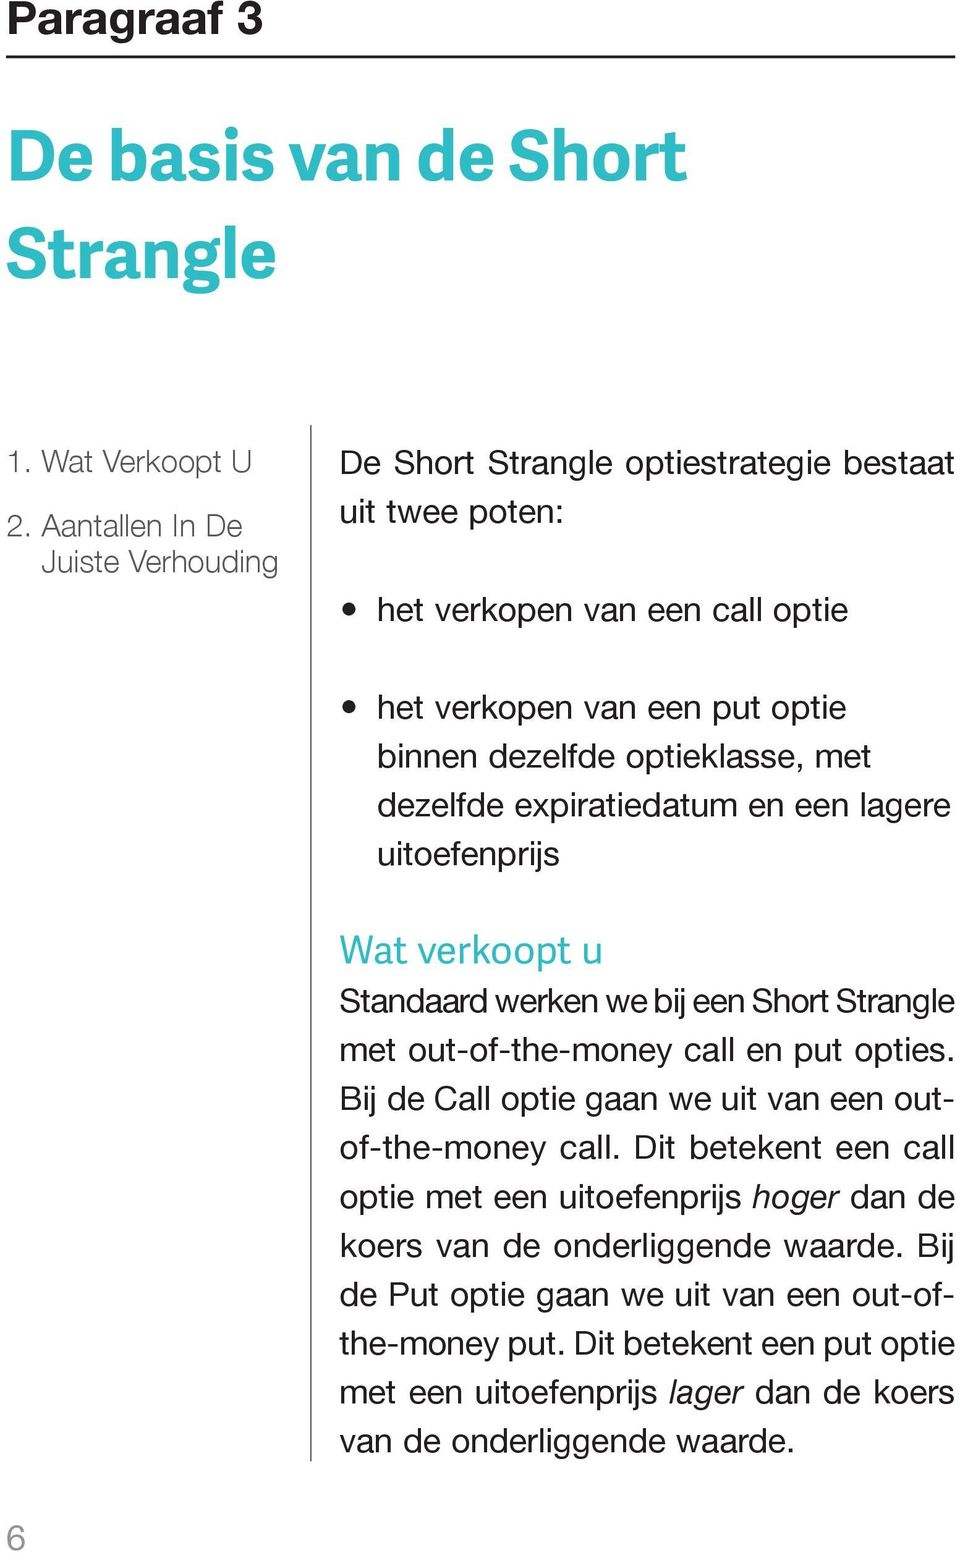 optieklasse, met dezelfde expiratiedatum en een lagere uitoefenprijs Wat verkoopt u Standaard werken we bij een Short Strangle met out-of-the-money call en put opties.